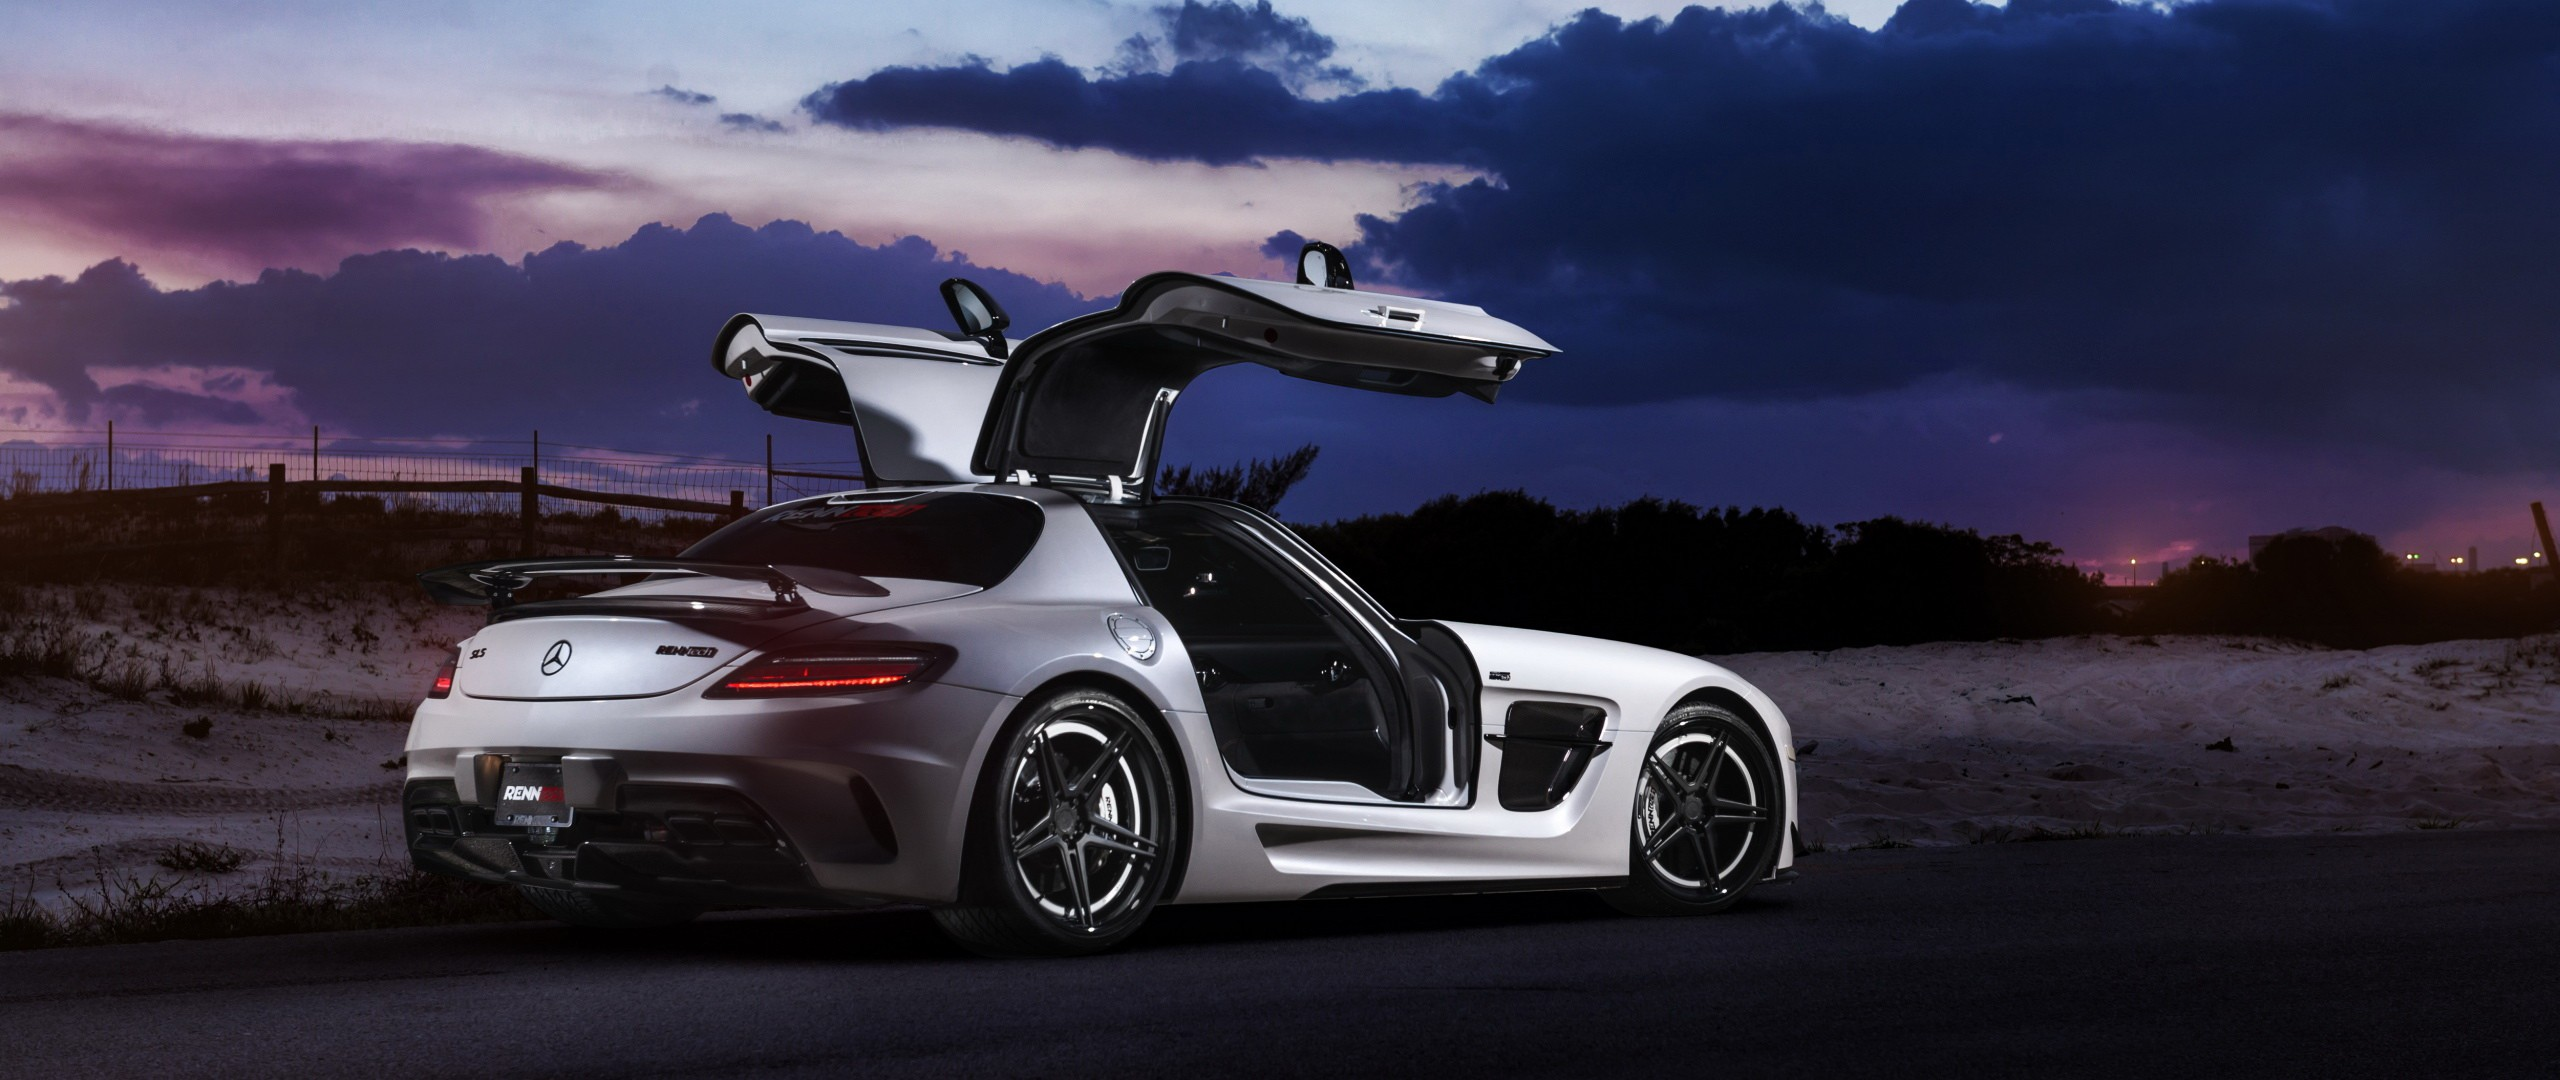 Image result for pics mercedes benz amg custom gull wing